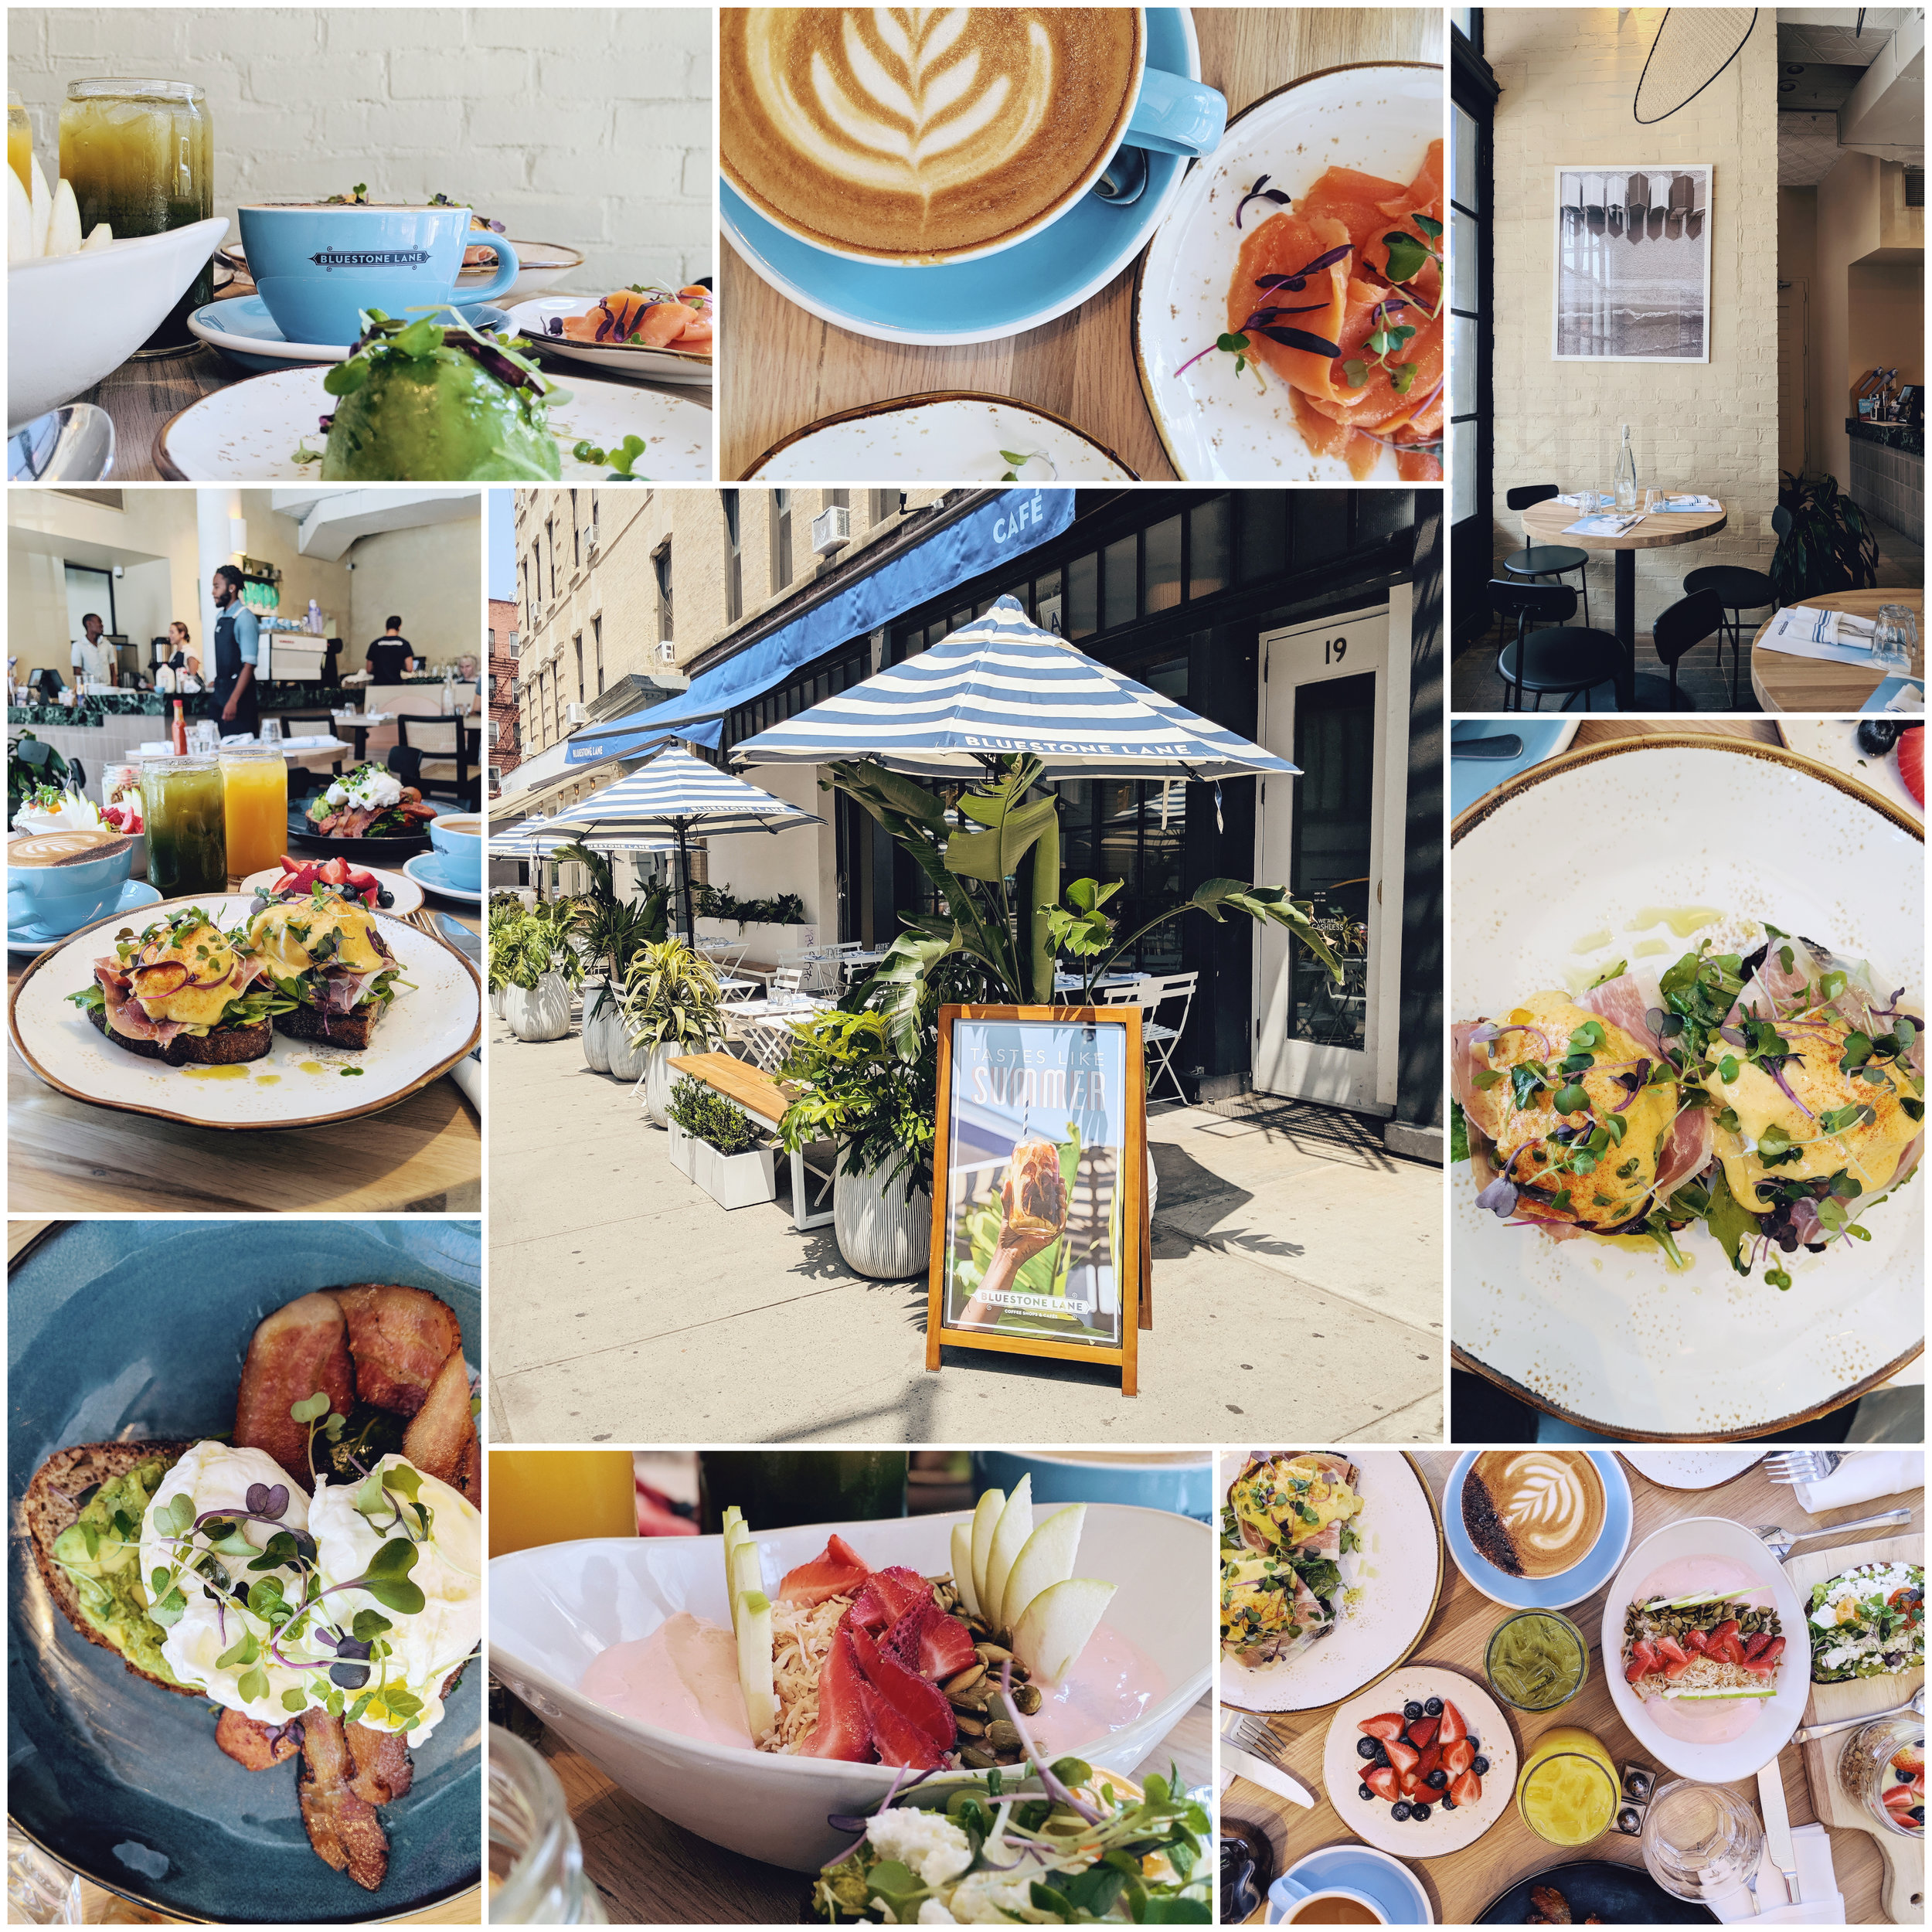 Produced, designed, and photographed lifestyle and menu items for promotion and marketing across social media and advertising channels.